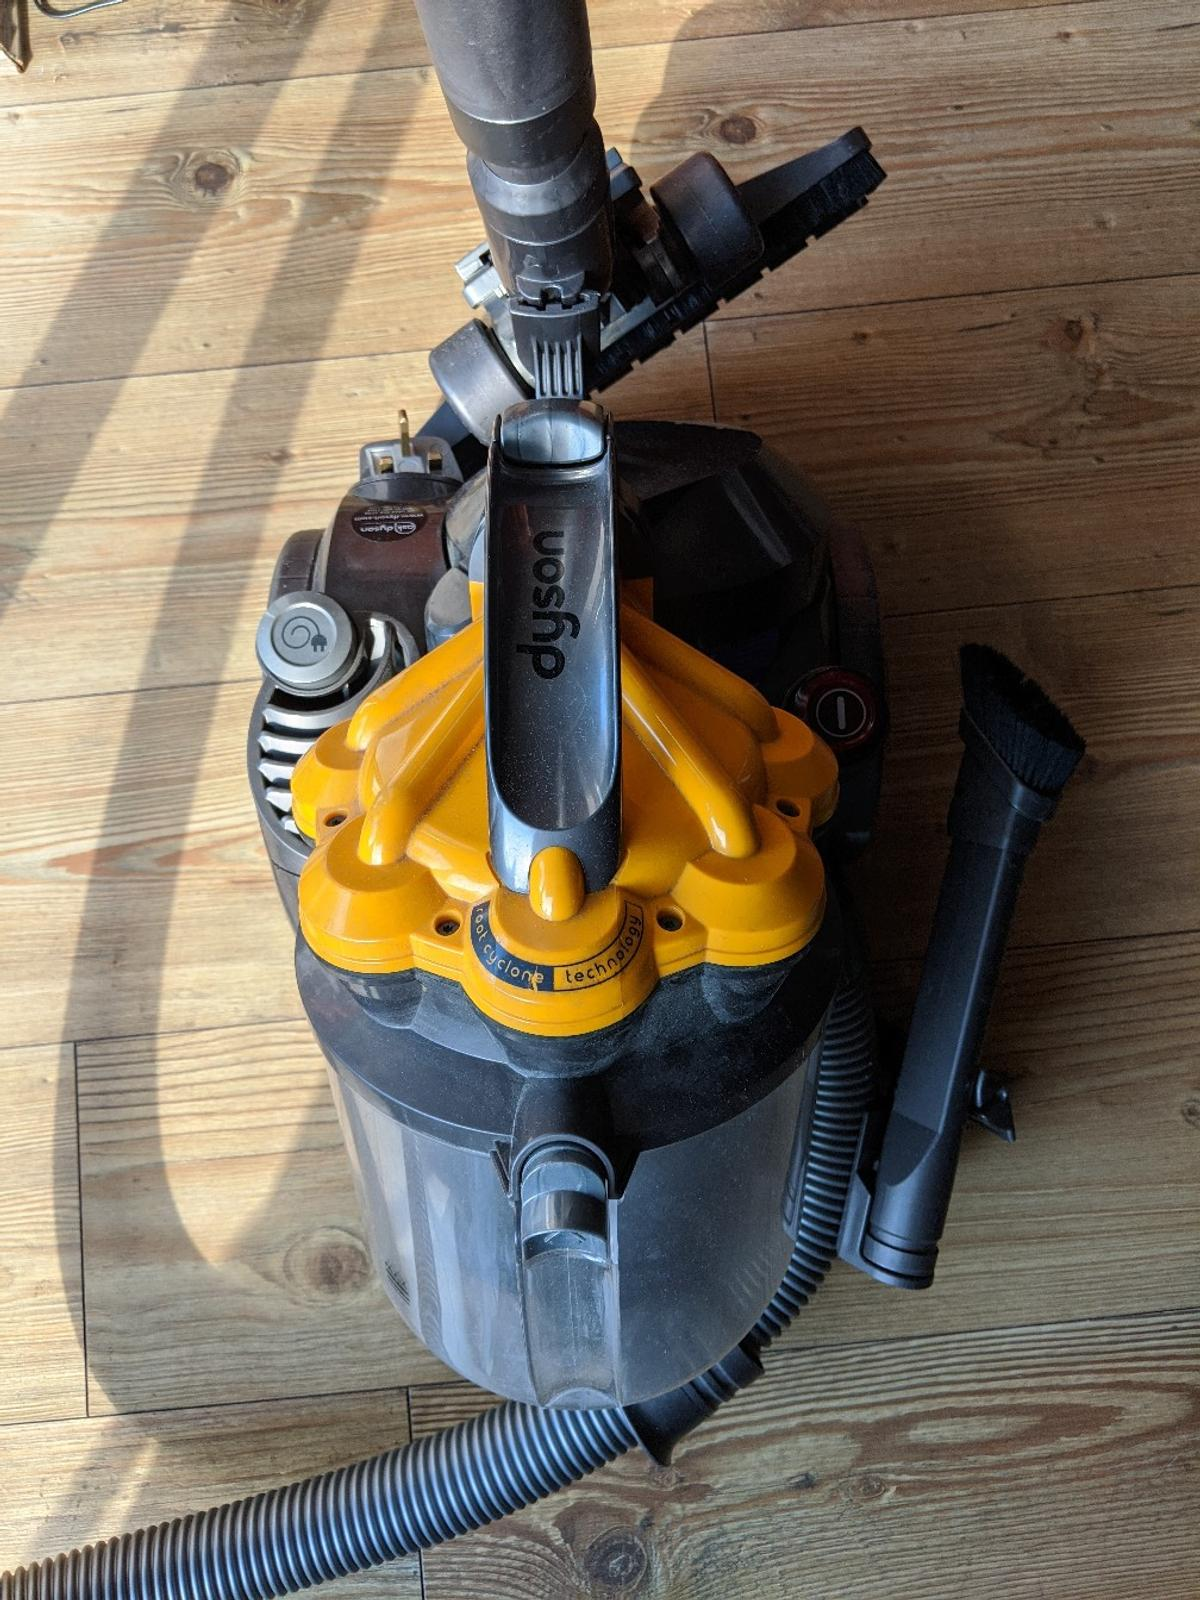 DYSON DC19 Root Cyclone Technology Vacuum. Condition is used, but in perfect working order.